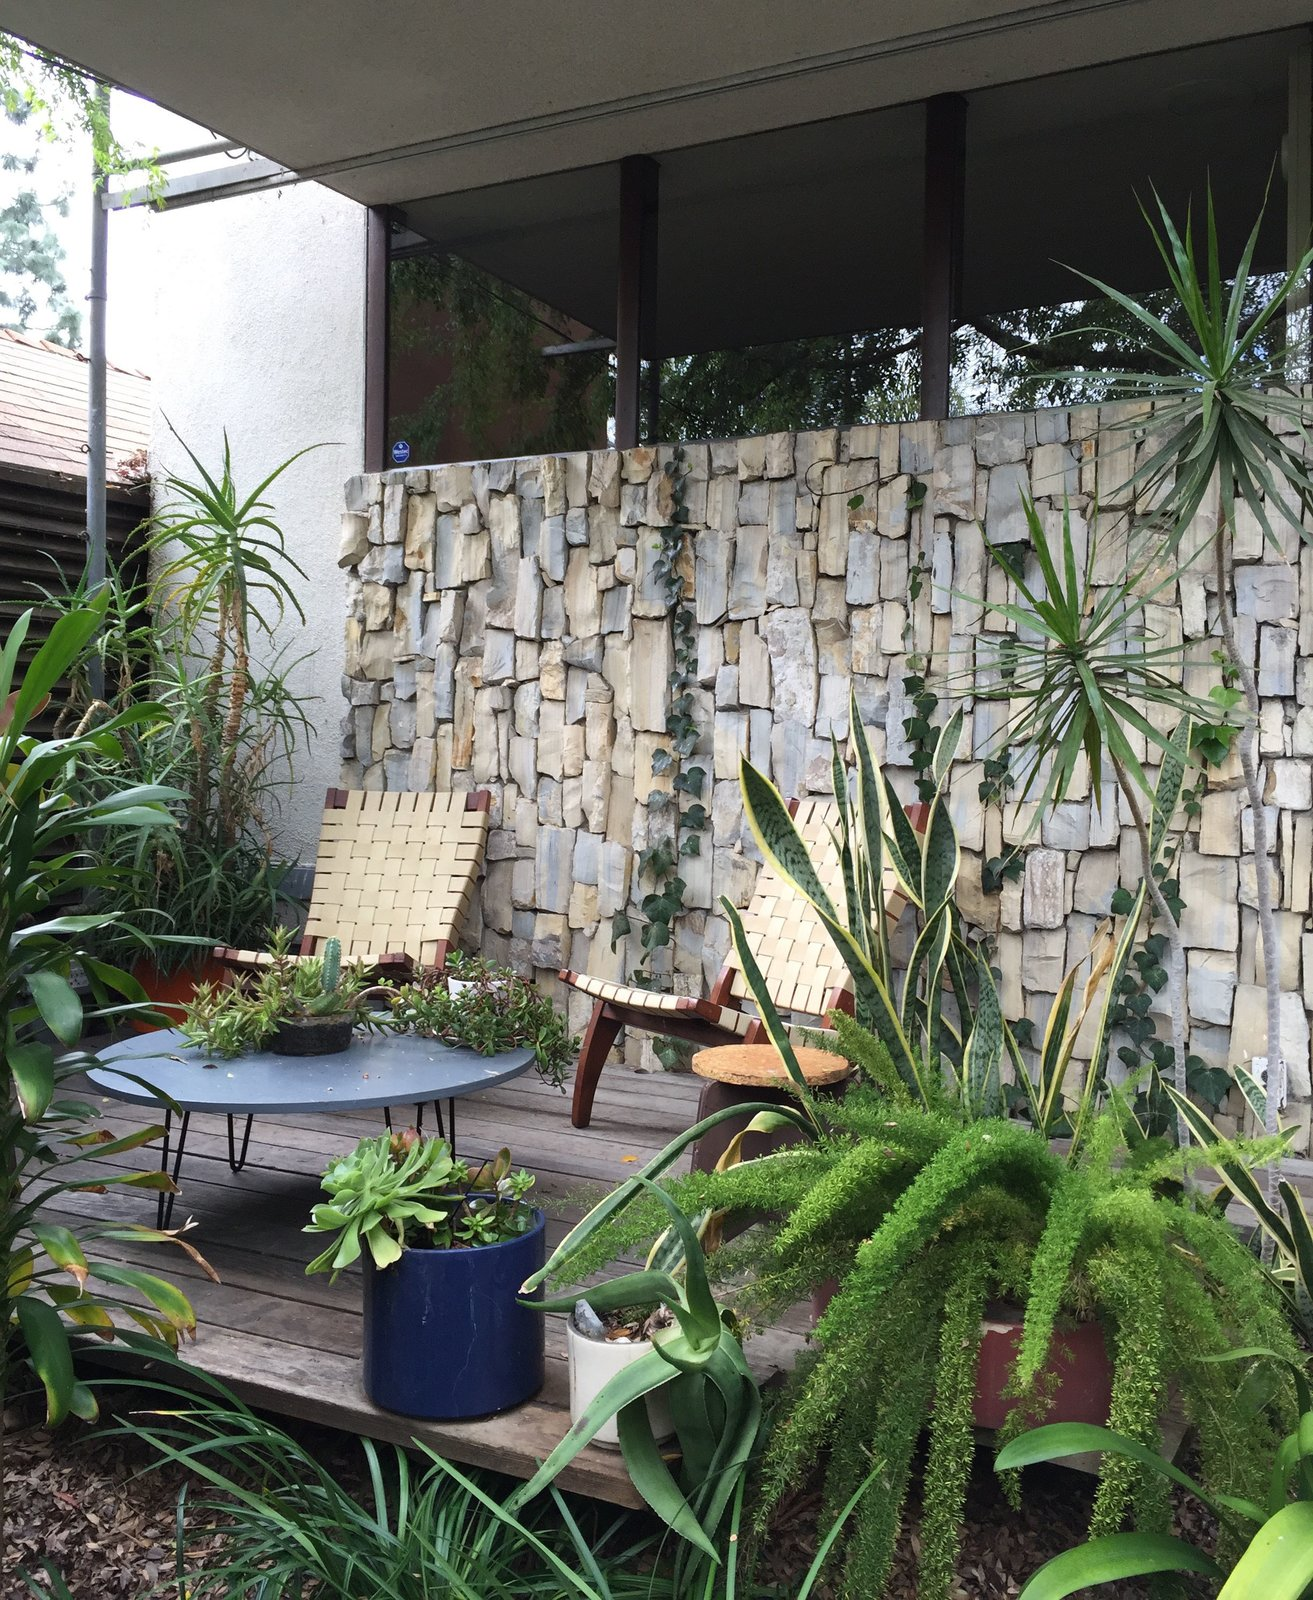 Like many modernist houses in Southern California, the courtyard was one of the most cherished locations and helped bring together both sections of the house with a pocket garden. Even after being cut 15 years ago, ivy plants continue to spread and shield the house from intense Southern sun exposure.  Photo 9 of 11 in Iconic Perspectives: Richard Neutra's VDL Studio & Residences